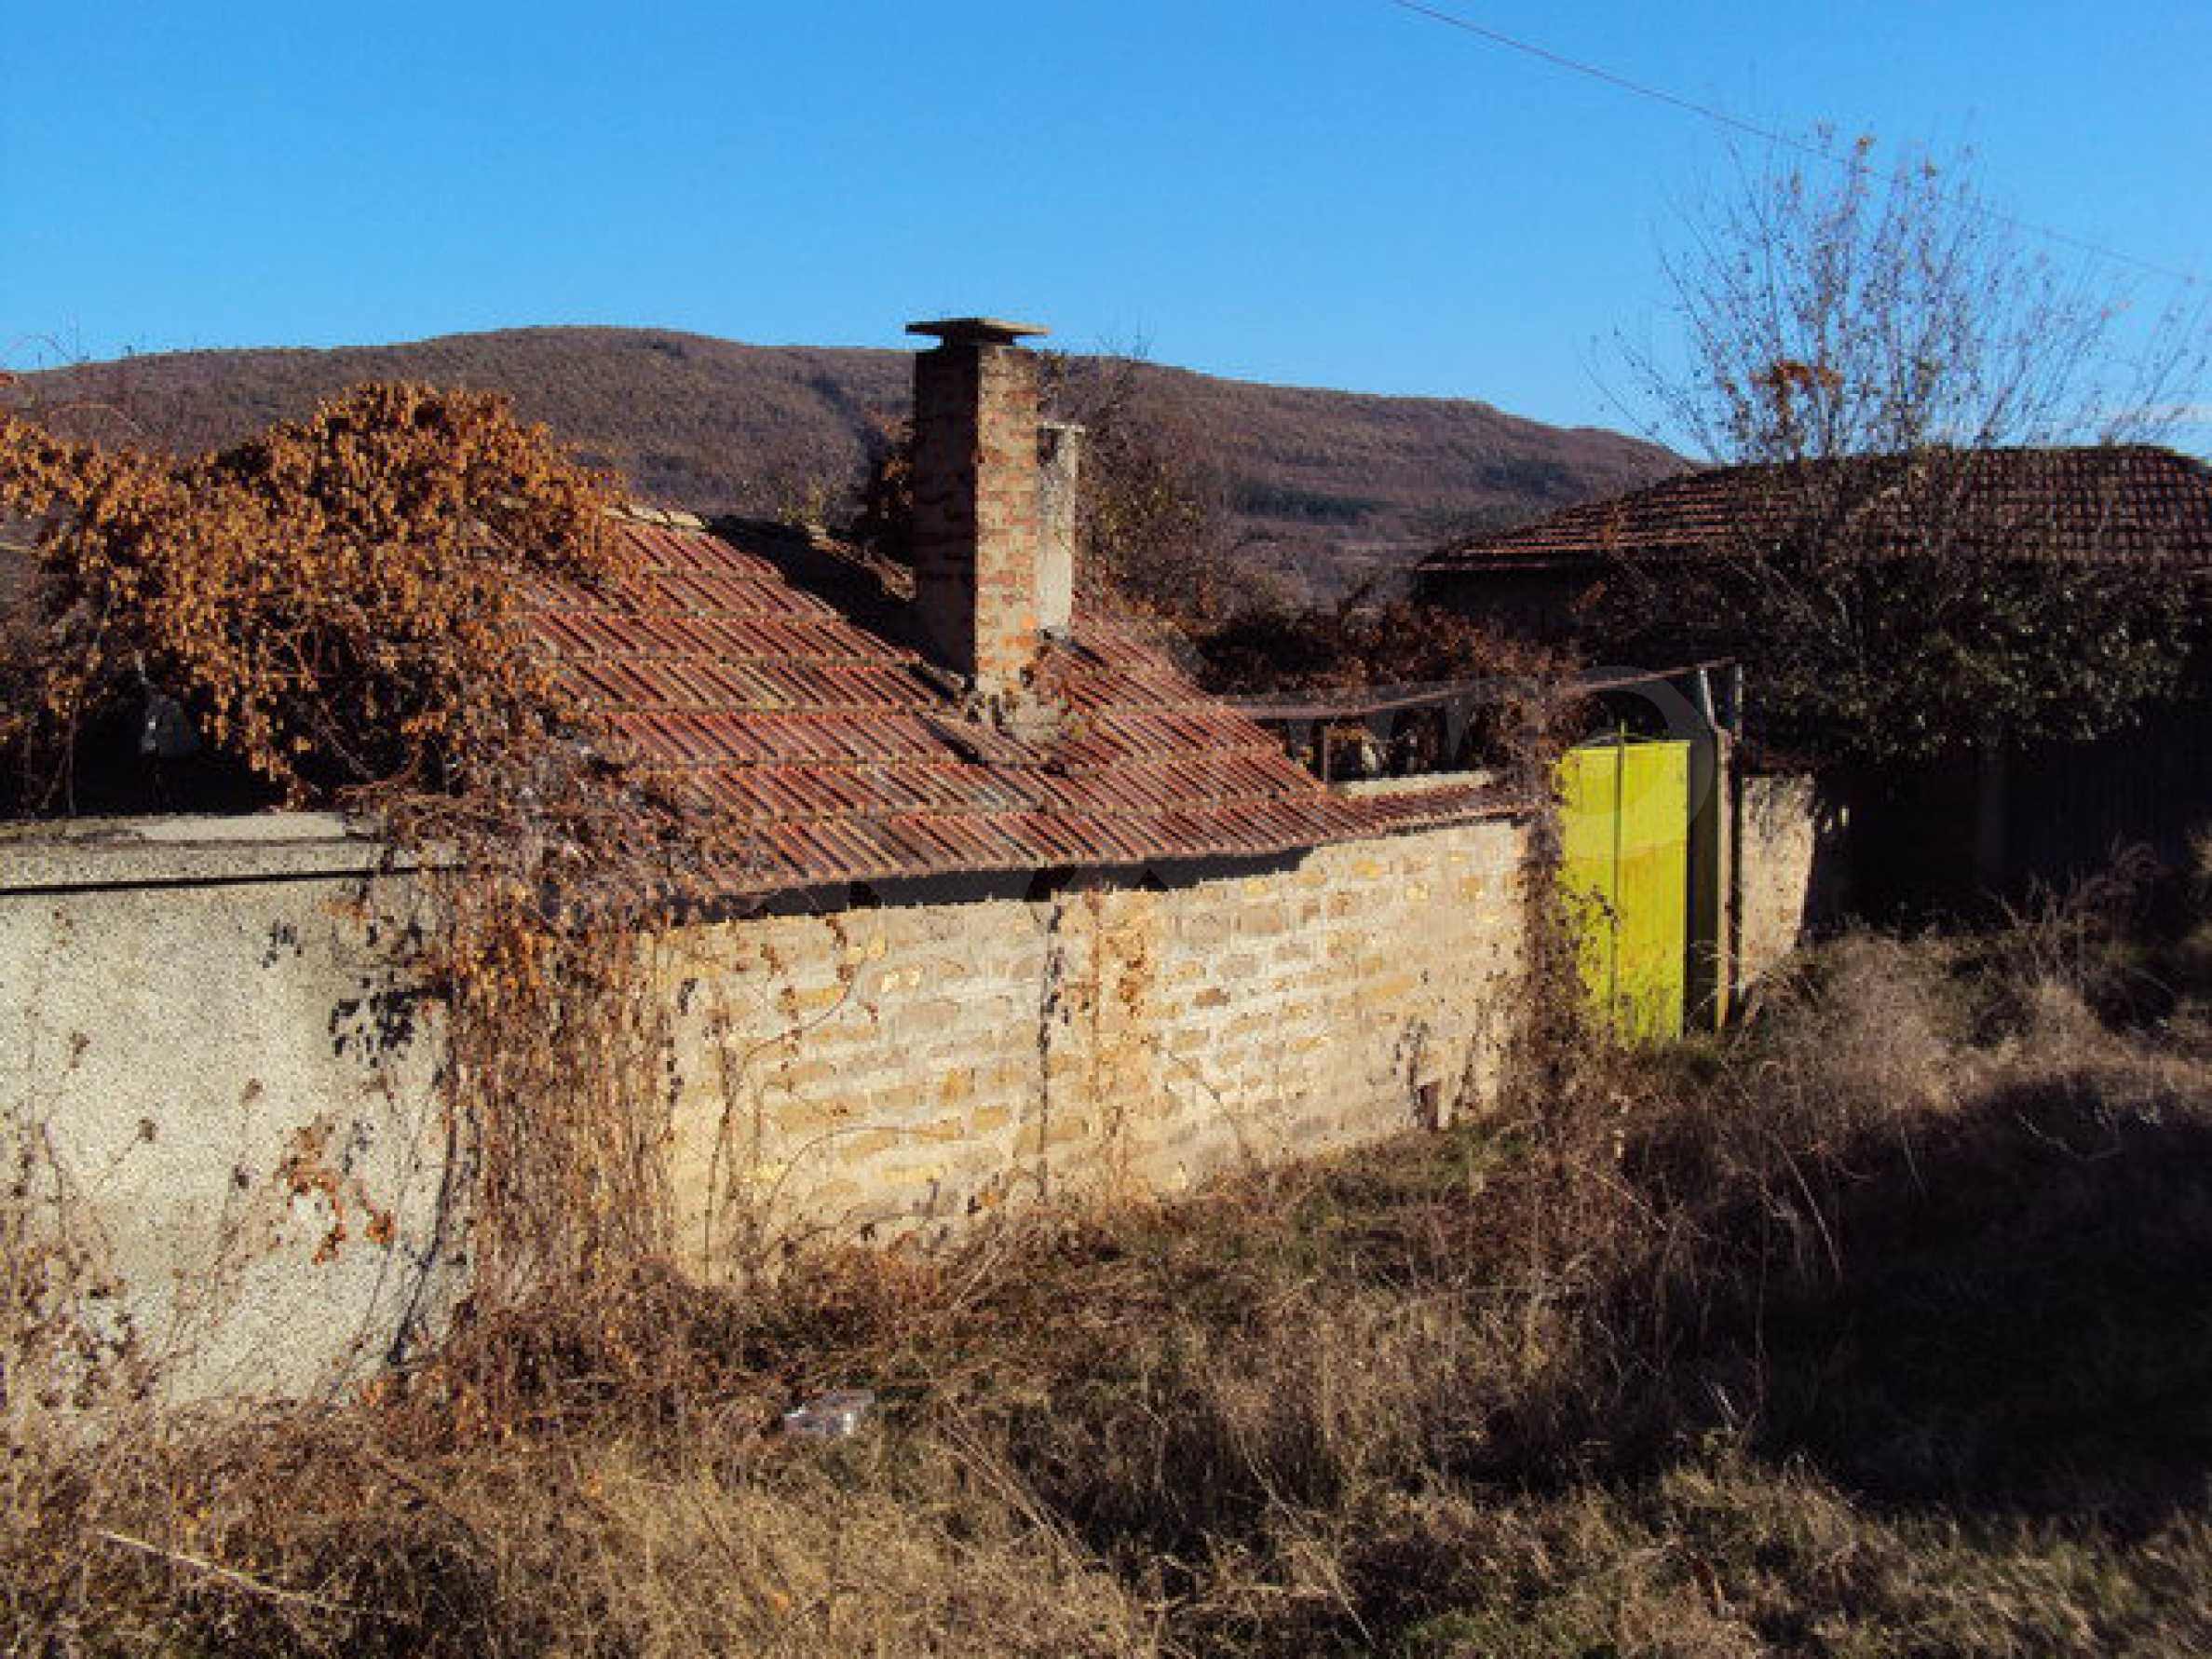 Spacious house in excellent condition in a village 25 km. the old capital of Veliko Tarnovo 26